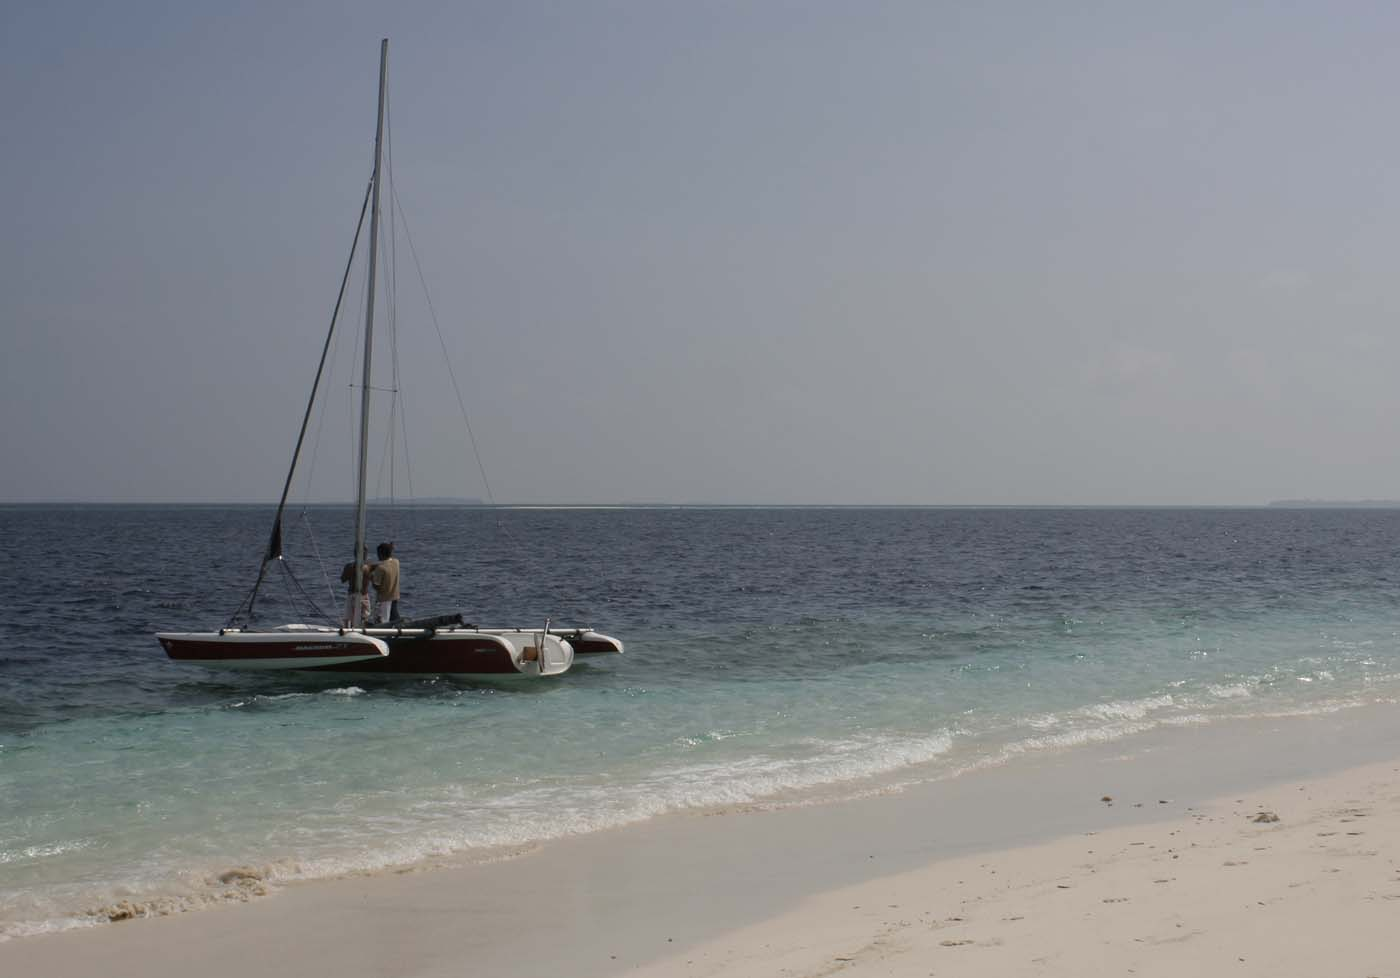 Sailing Trip With The Trimaran. Live Underwater Cameras In The Ocean